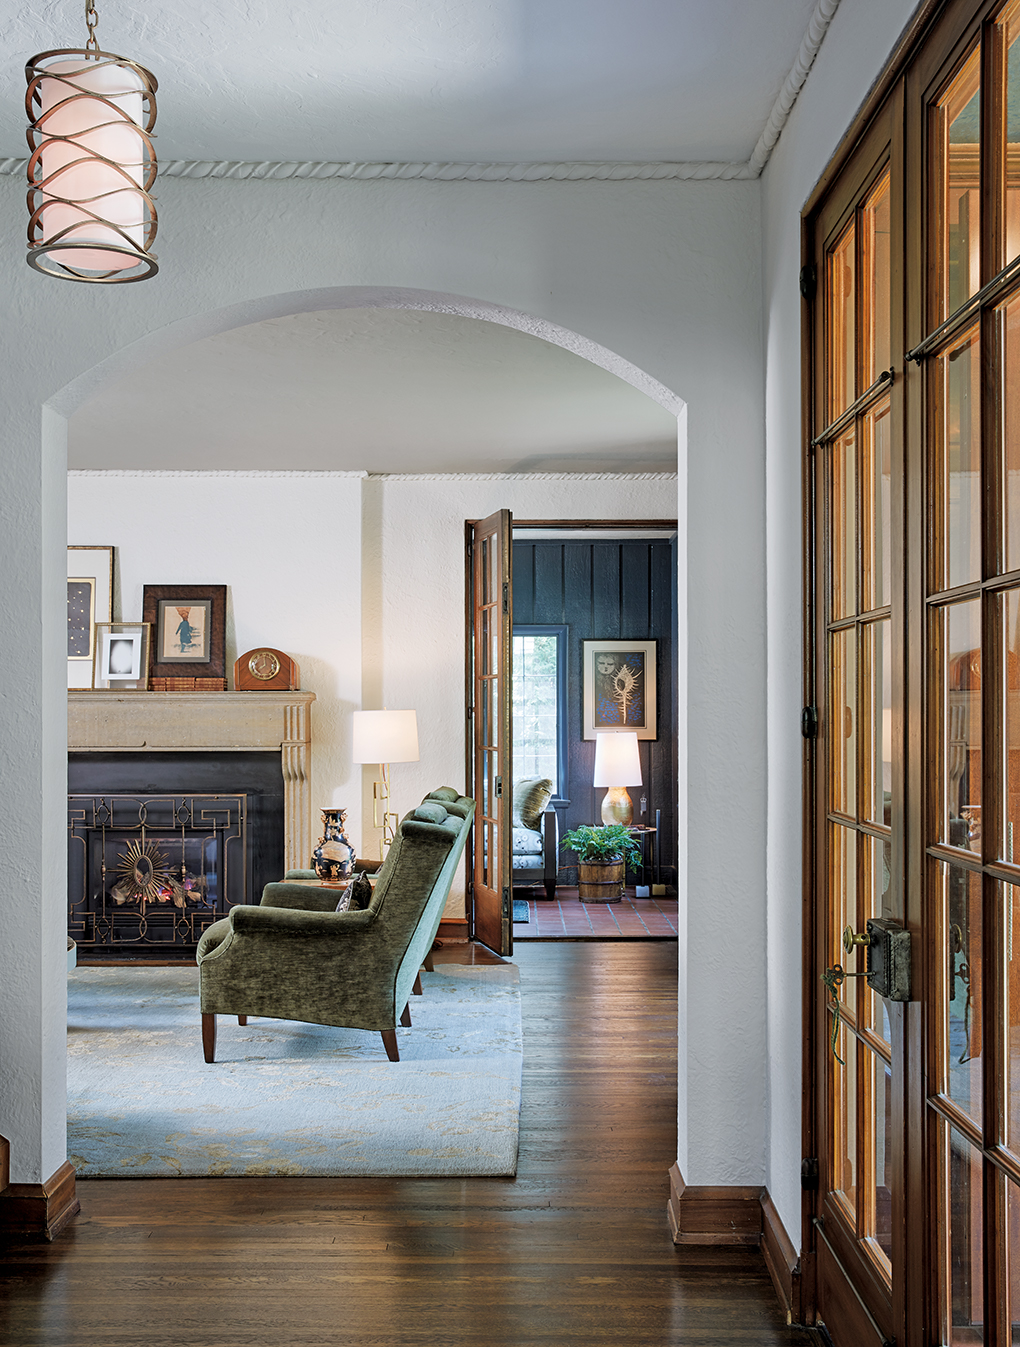 A graceful archway opens from the foyer to the living room, showing a two chairs on a rug set next to a fireplace along with a glimpse of the deep navy sunroom.